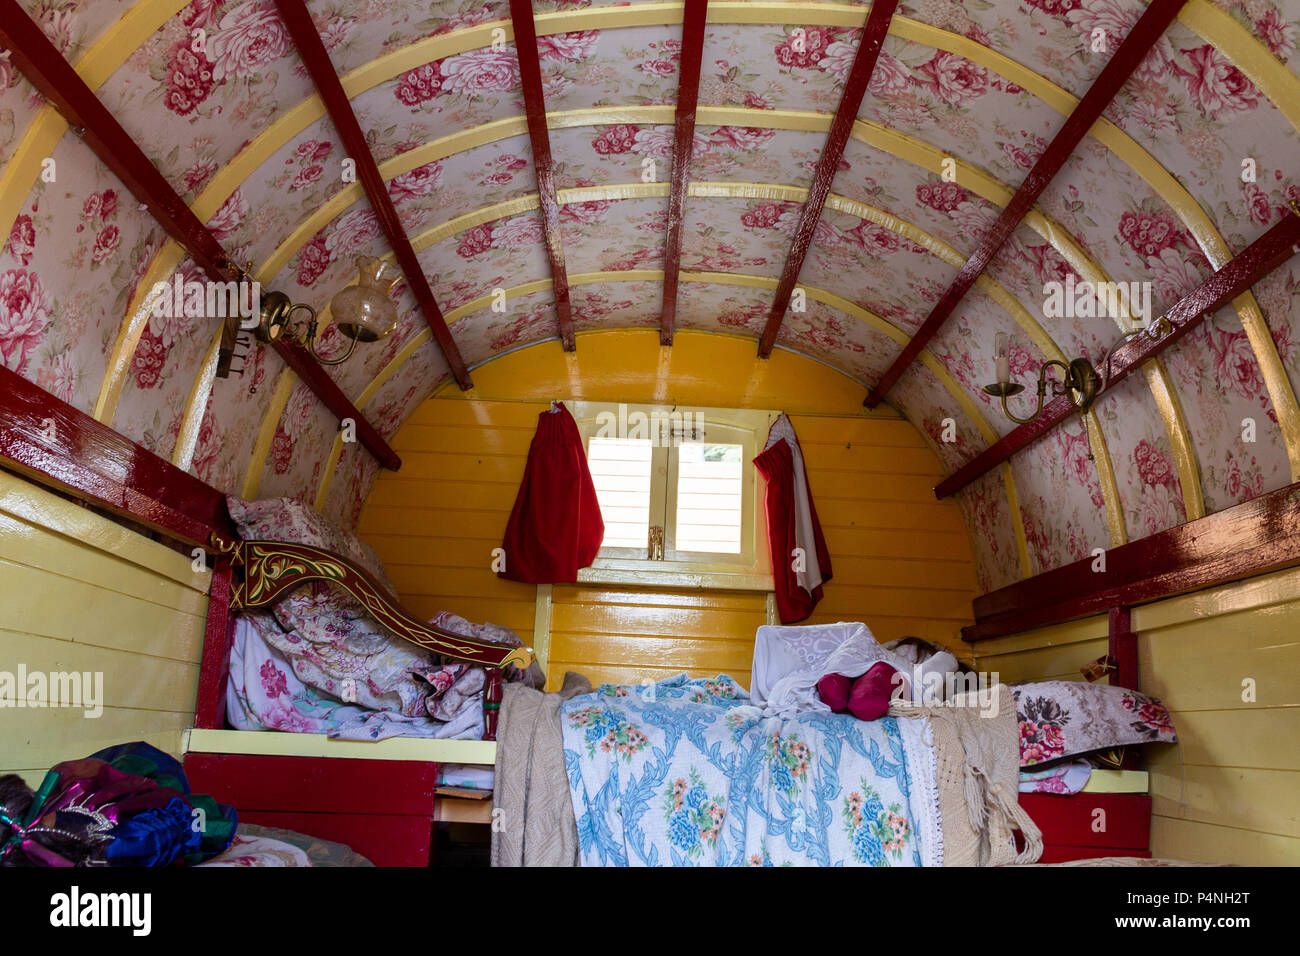 Inside a gypsy caravan showing the floral paintwork and colourful decoration. - Stock Image